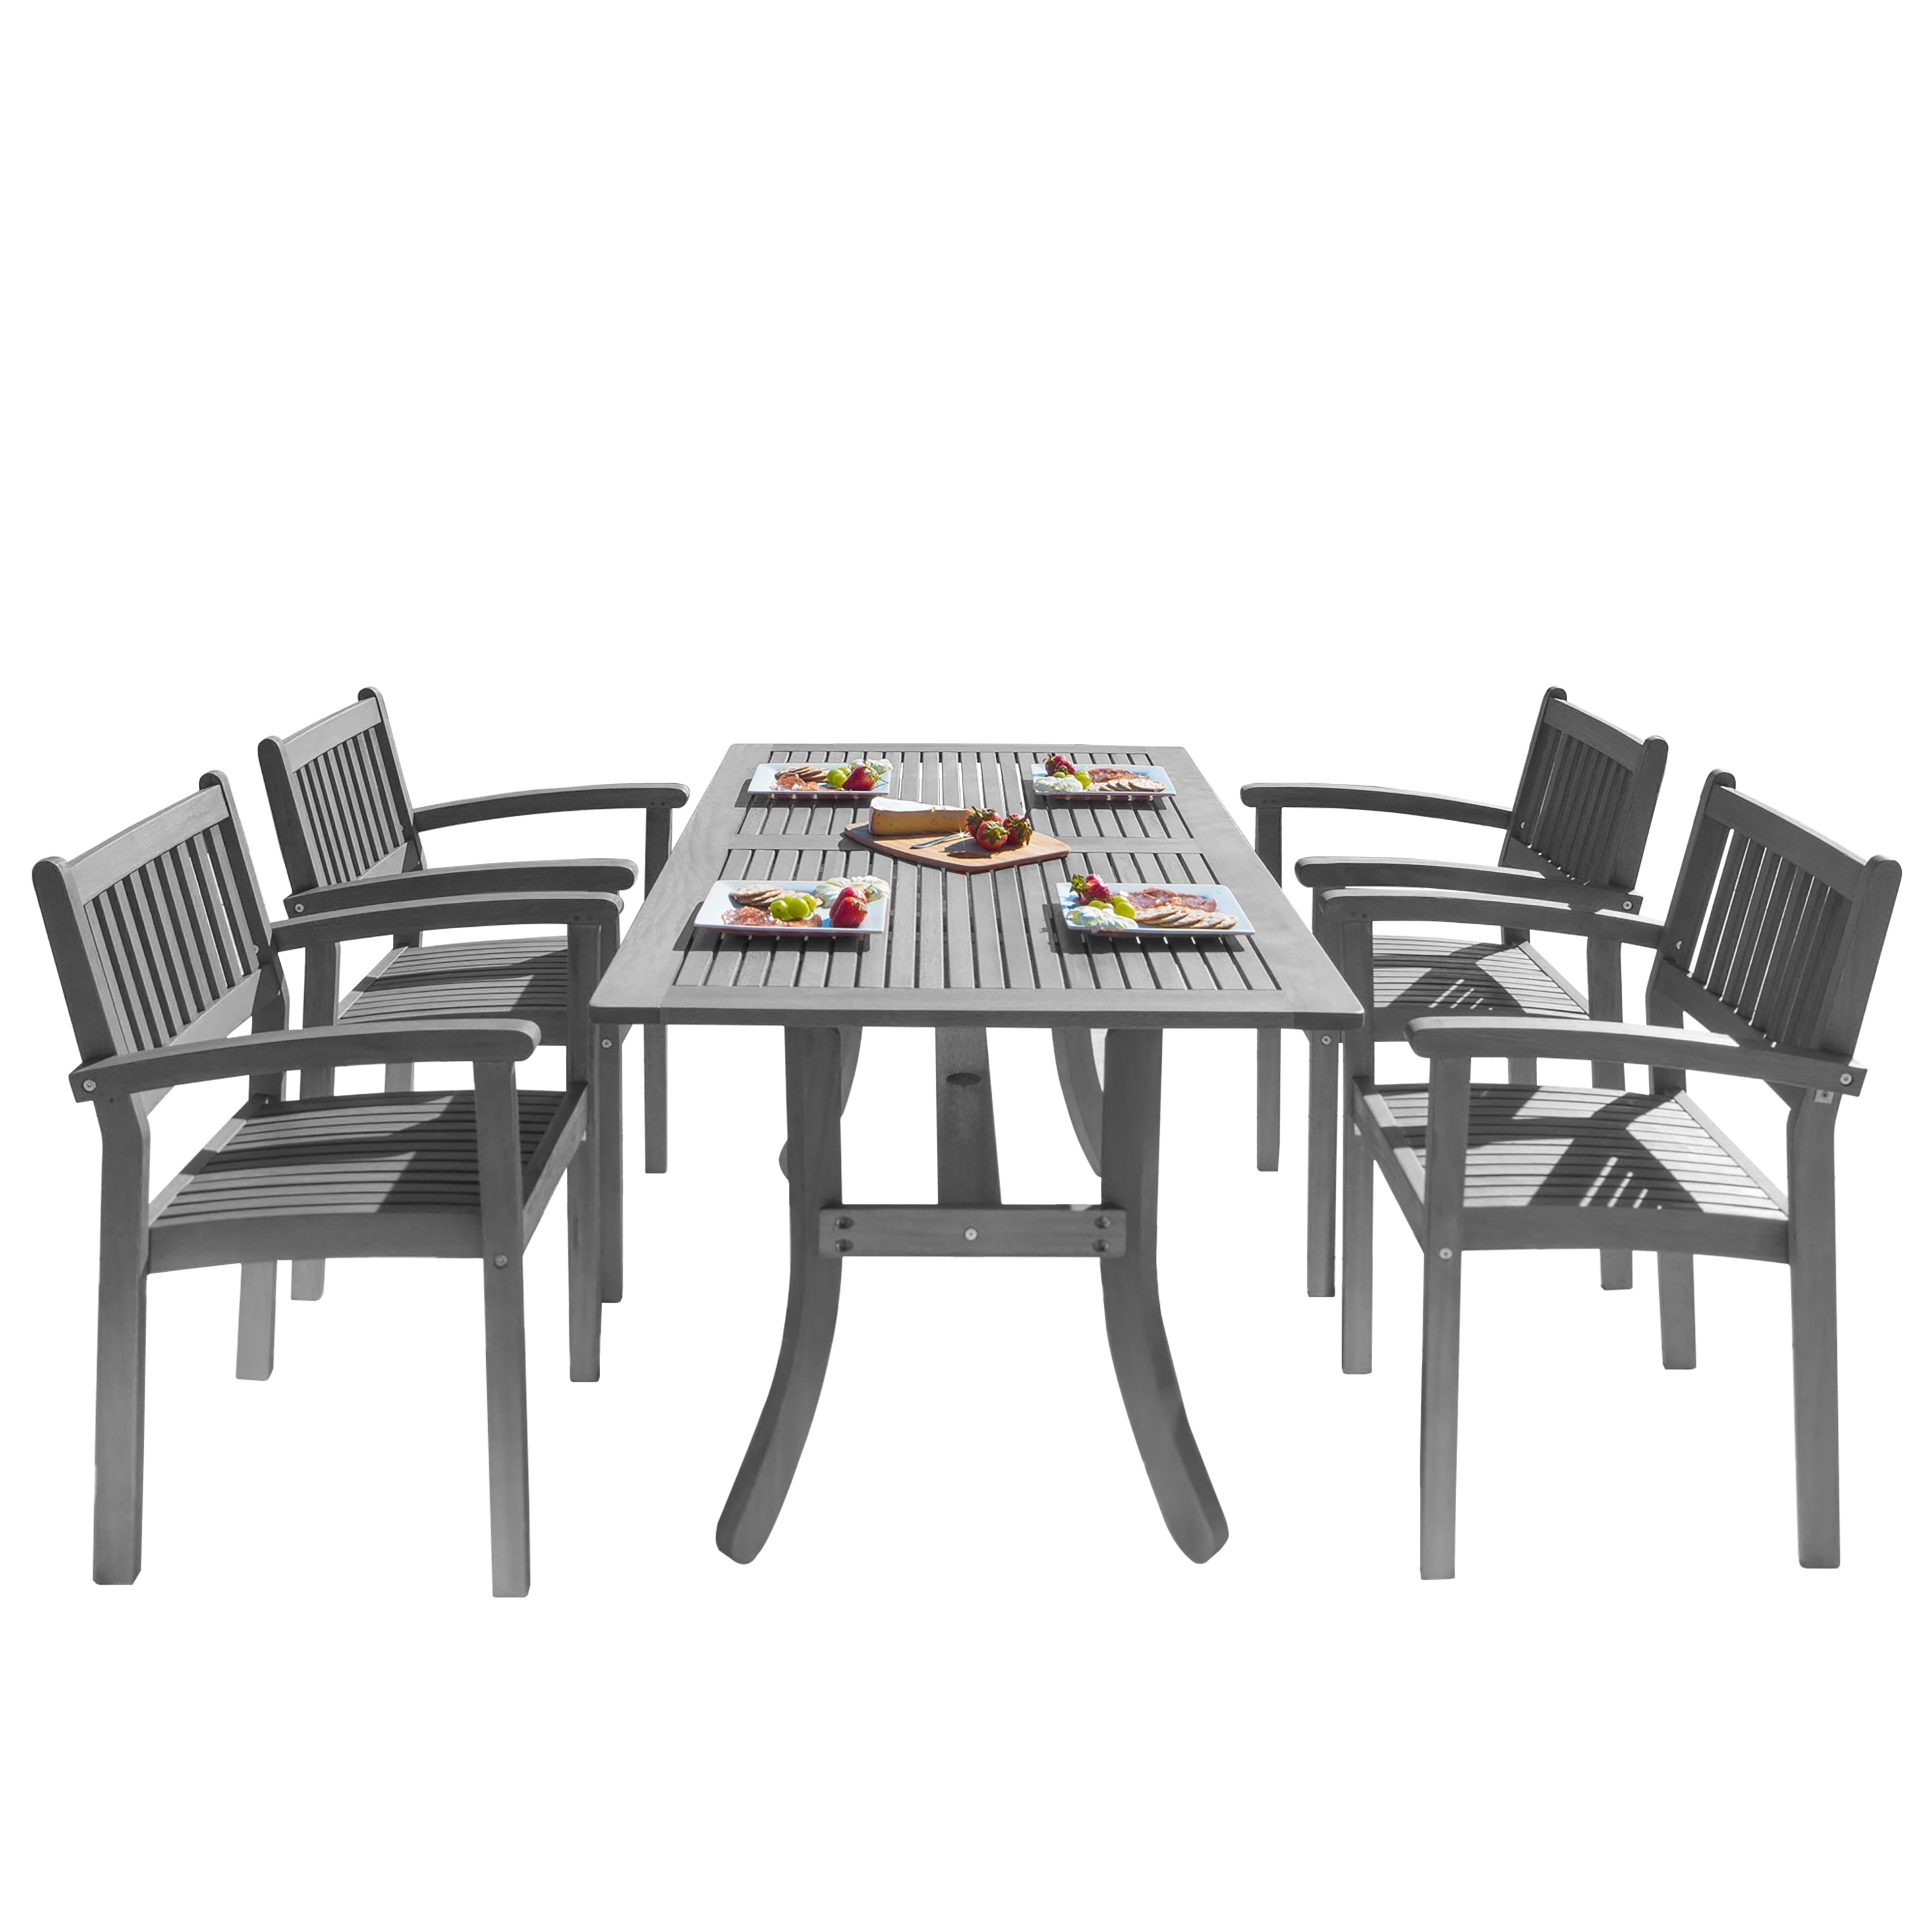 Havenside home surfside 5 piece eucalyptus wood outdoor dining set with curved table